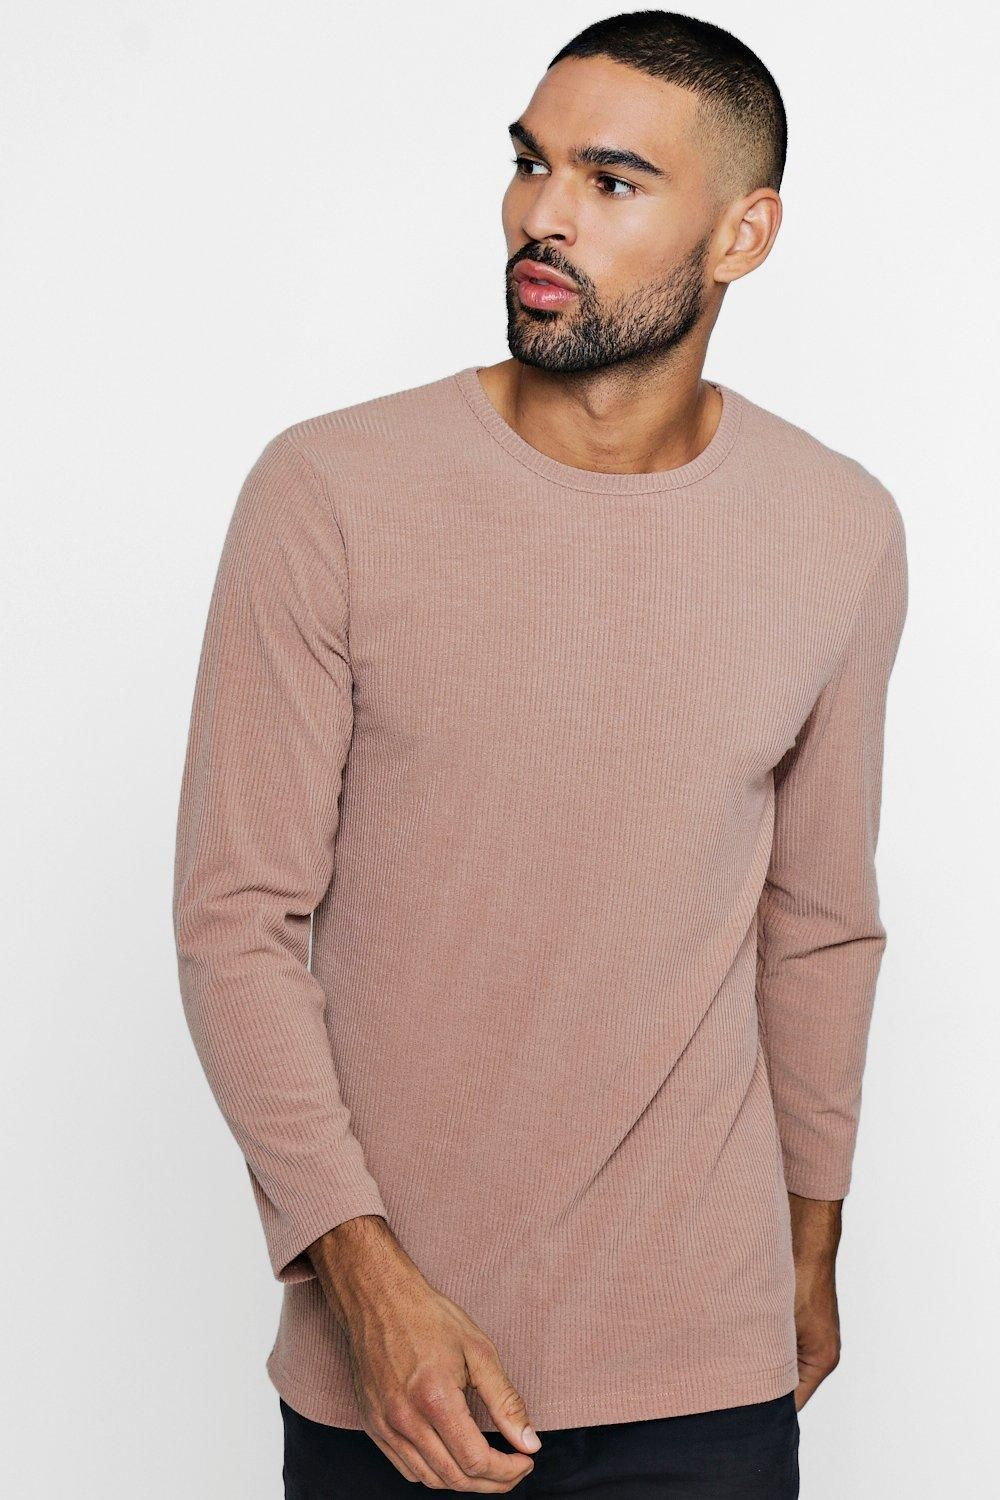 6cd0b1155a7f74 Layer up and look good in a jumper or cardigan Fashion's all about the  finishing touches